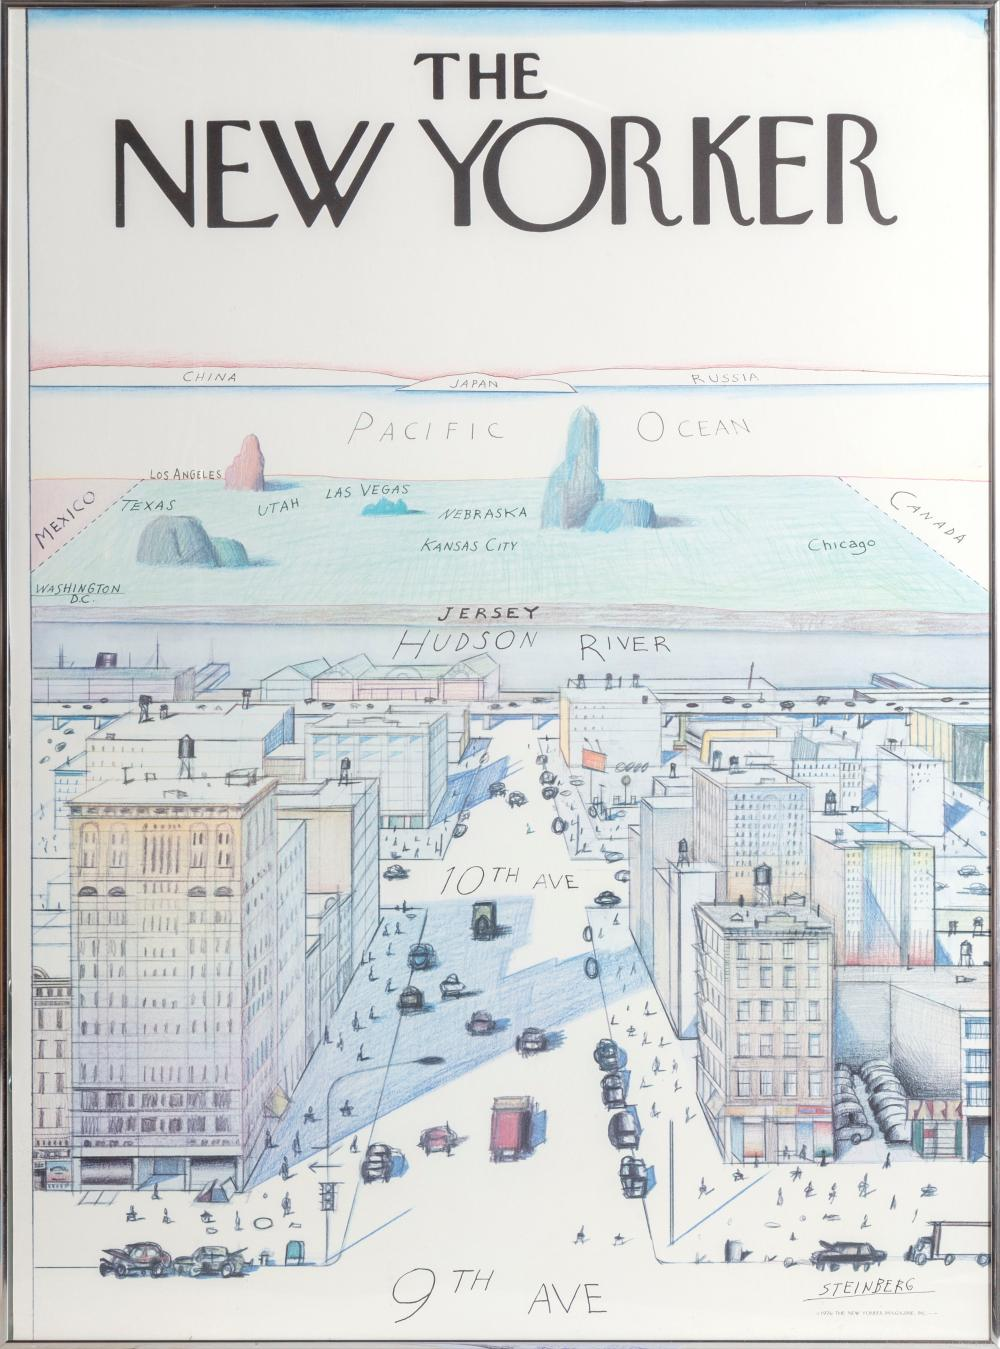 Saul Steinberg, View of the World from 9th Avenue - The New Yorker, Poster